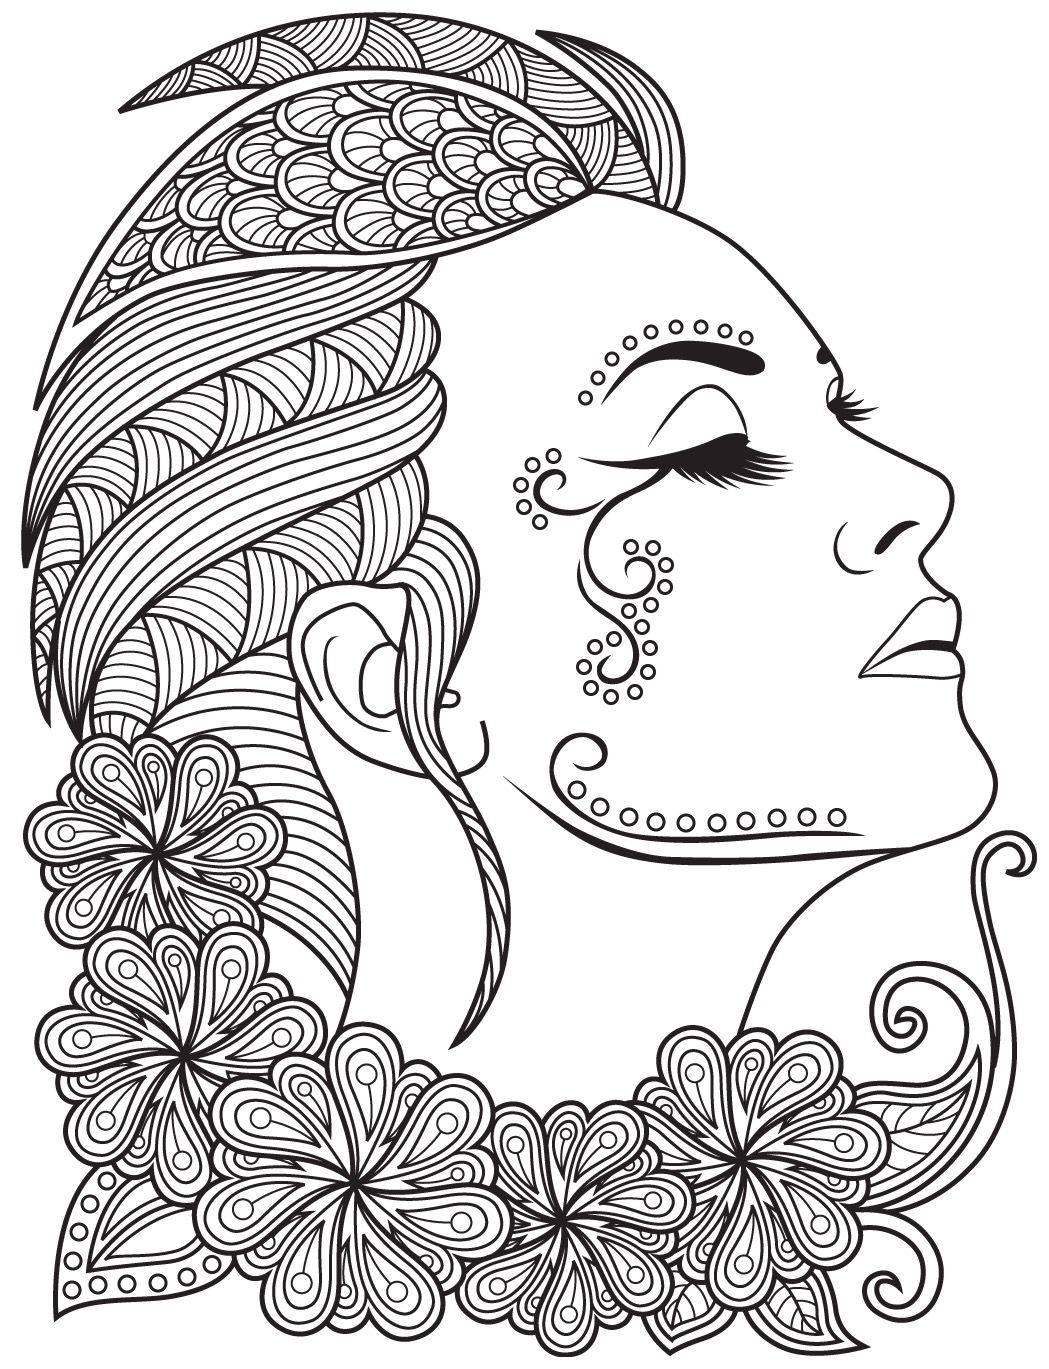 Women Faces To Color Colorish Free Coloring App For Adults By Goodsofttech Coloring Apps Mandala Design Art Mandala Coloring Pages